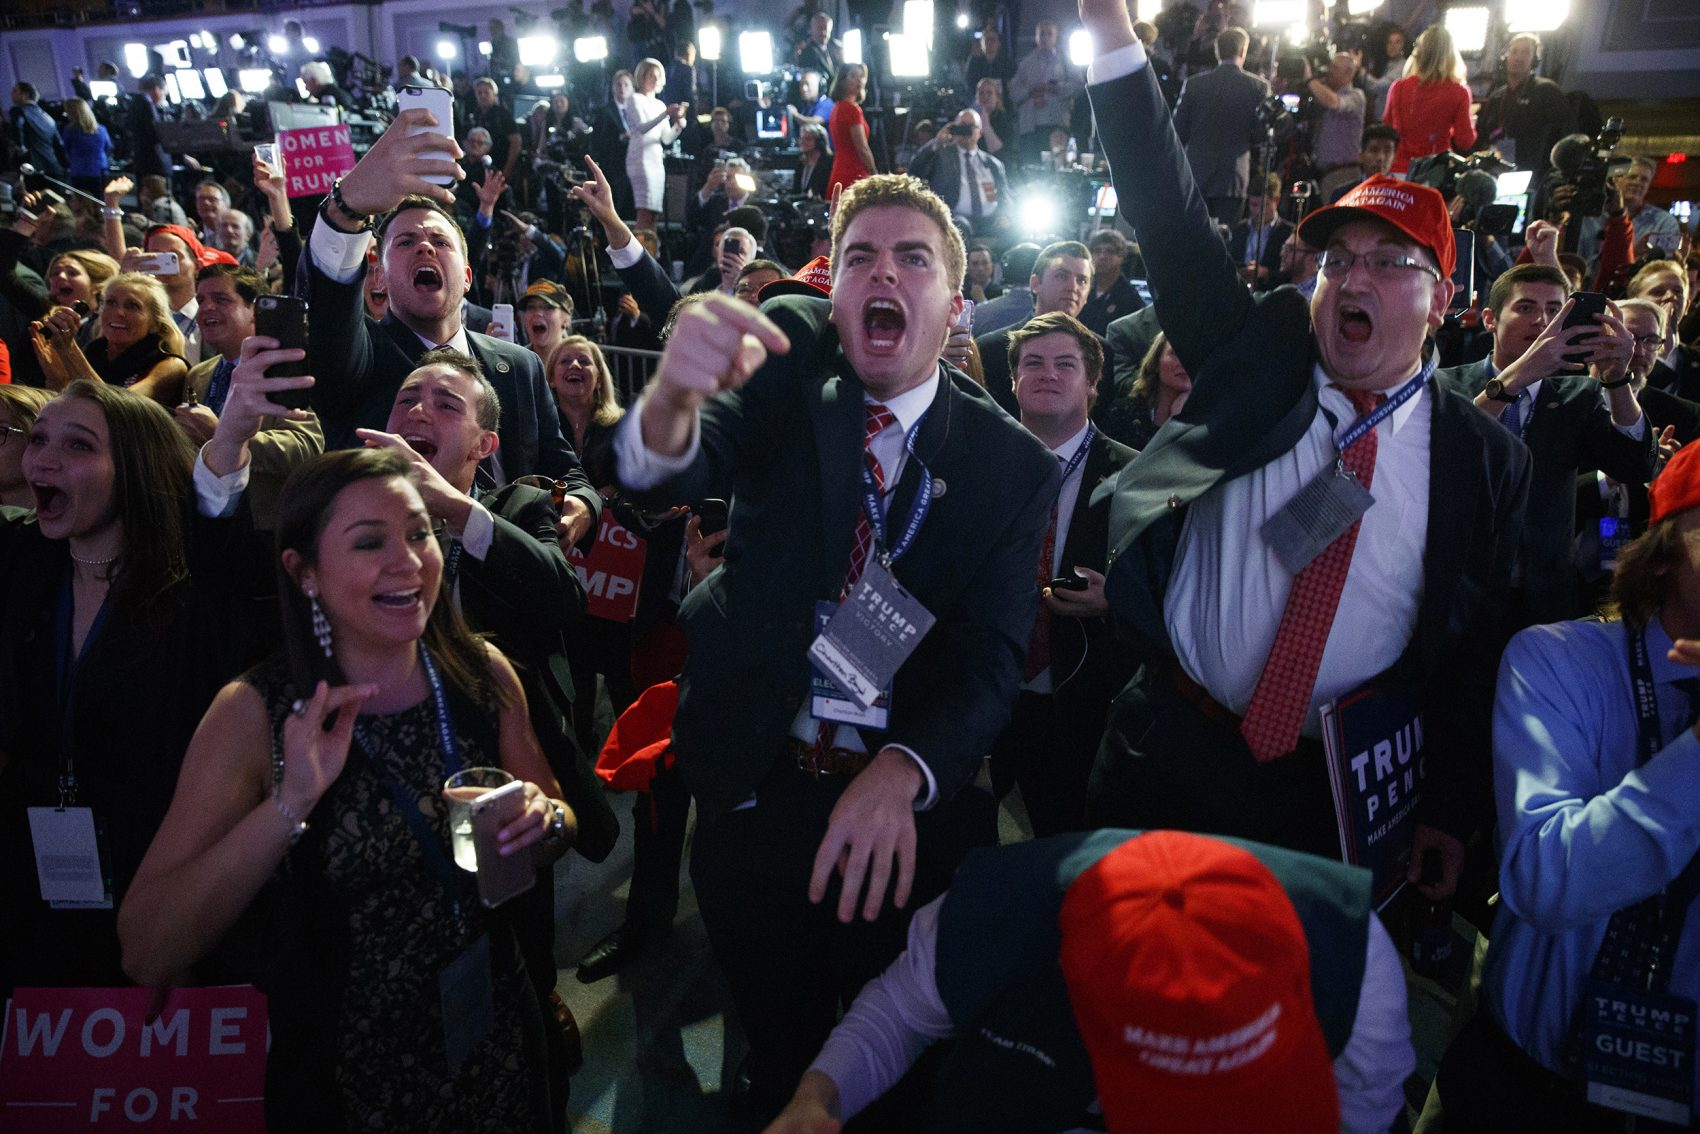 Donald Trump supporters cheer as they watch election returns Tuesday night in New York. Trump won the presidency in an upset, after a tumultuous campaign. (Evan Vucci/AP)